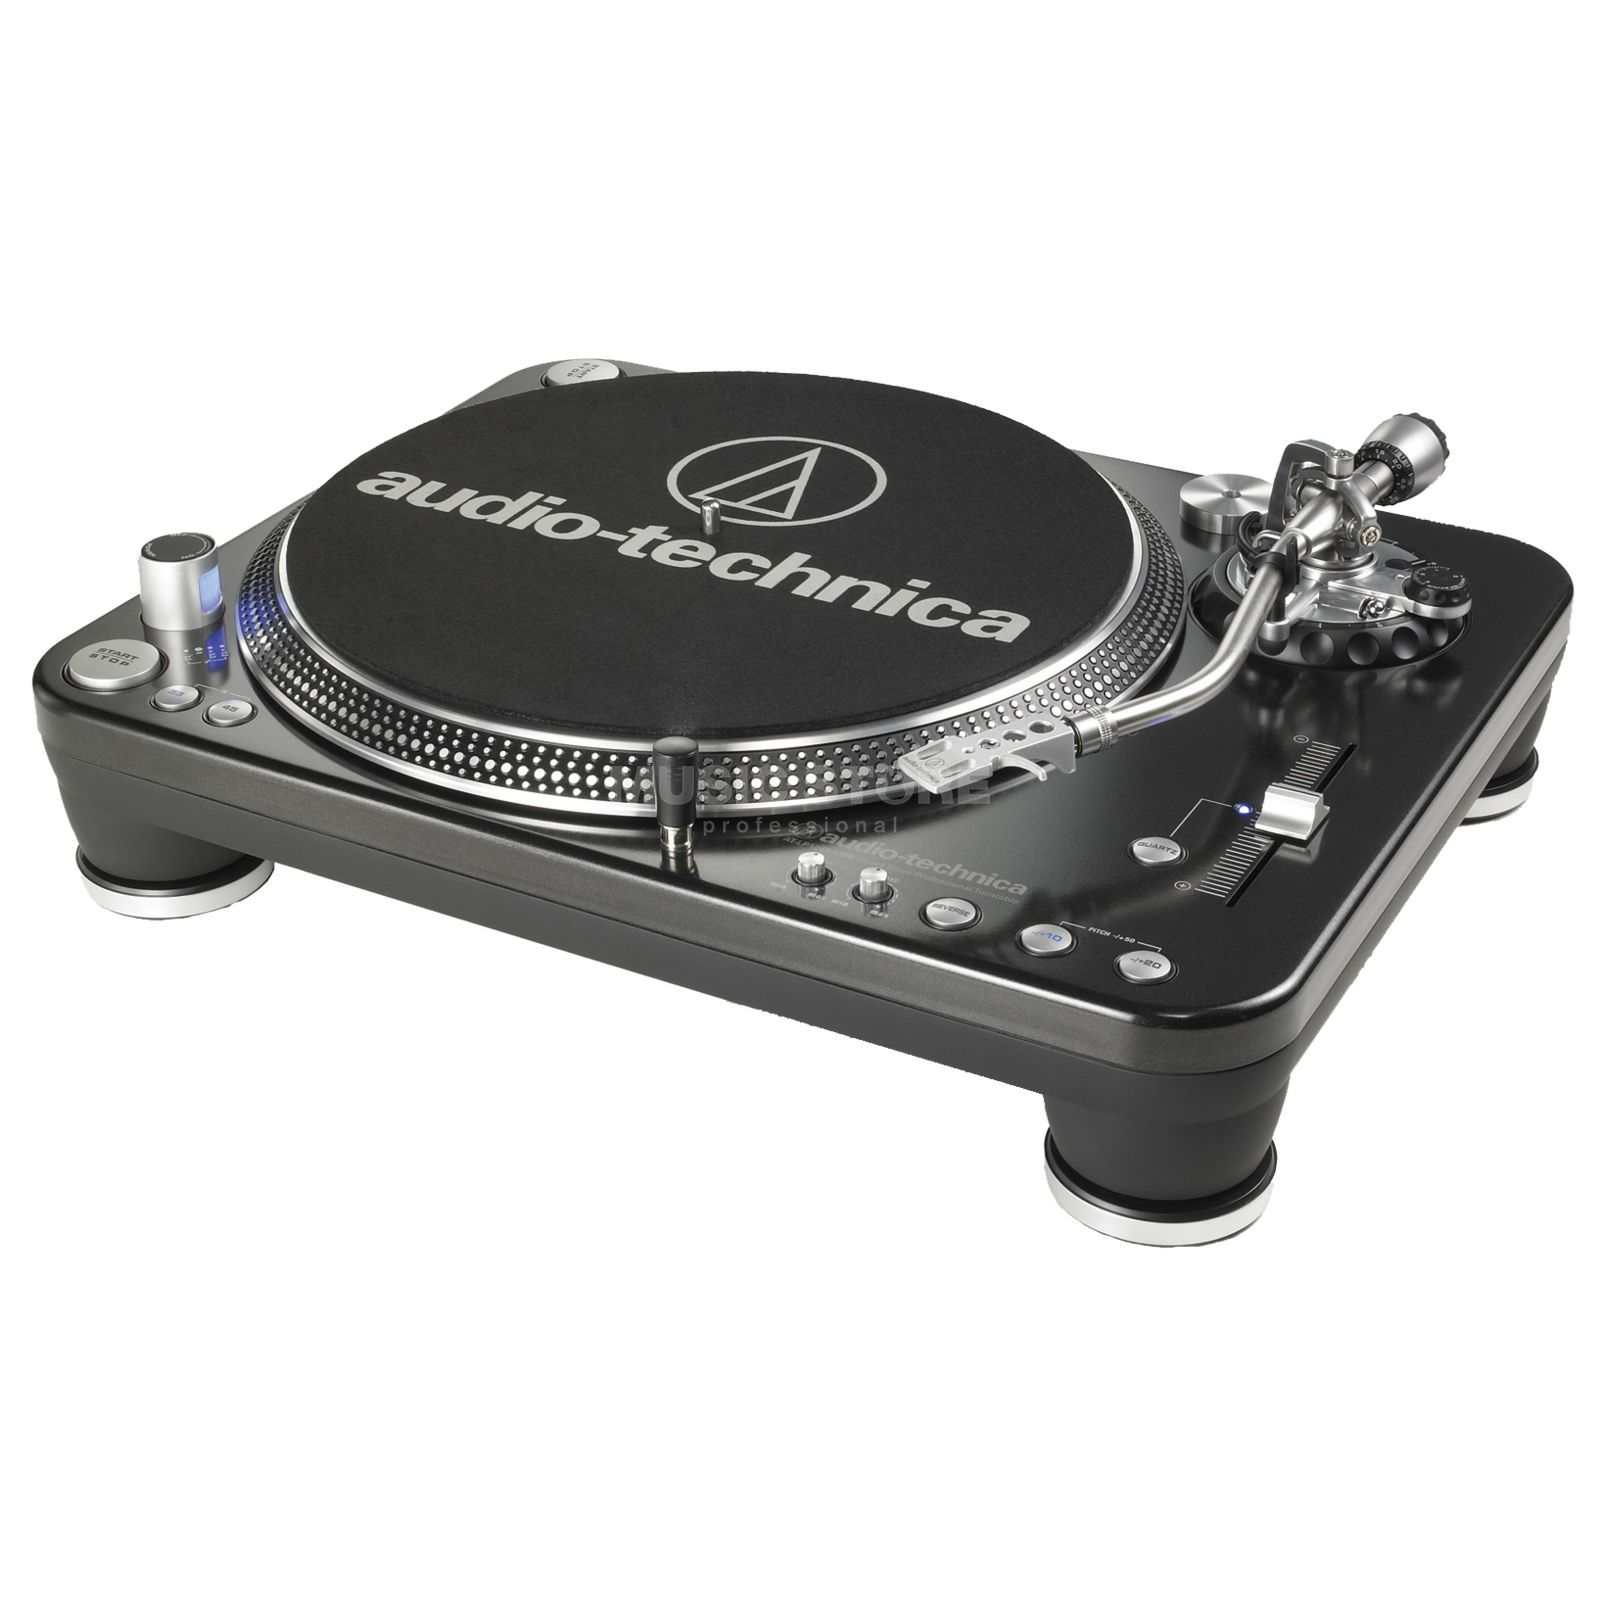 Audio-Technica AT-LP1240USB Turntable, Direct Drive USB Zdjęcie produktu